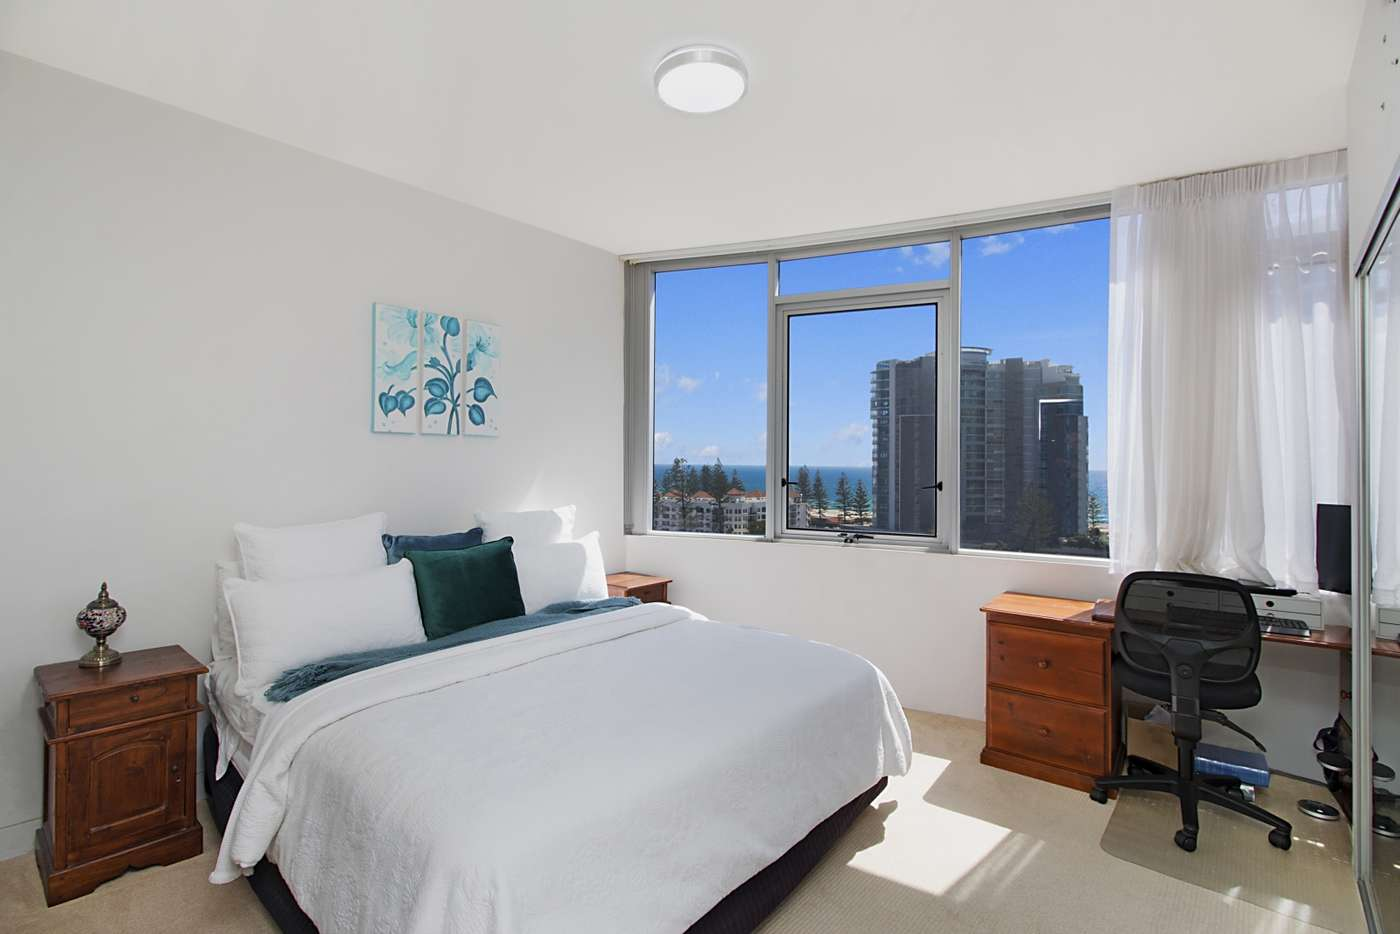 Fifth view of Homely unit listing, 1103/14 Stuart Street, Tweed Heads NSW 2485